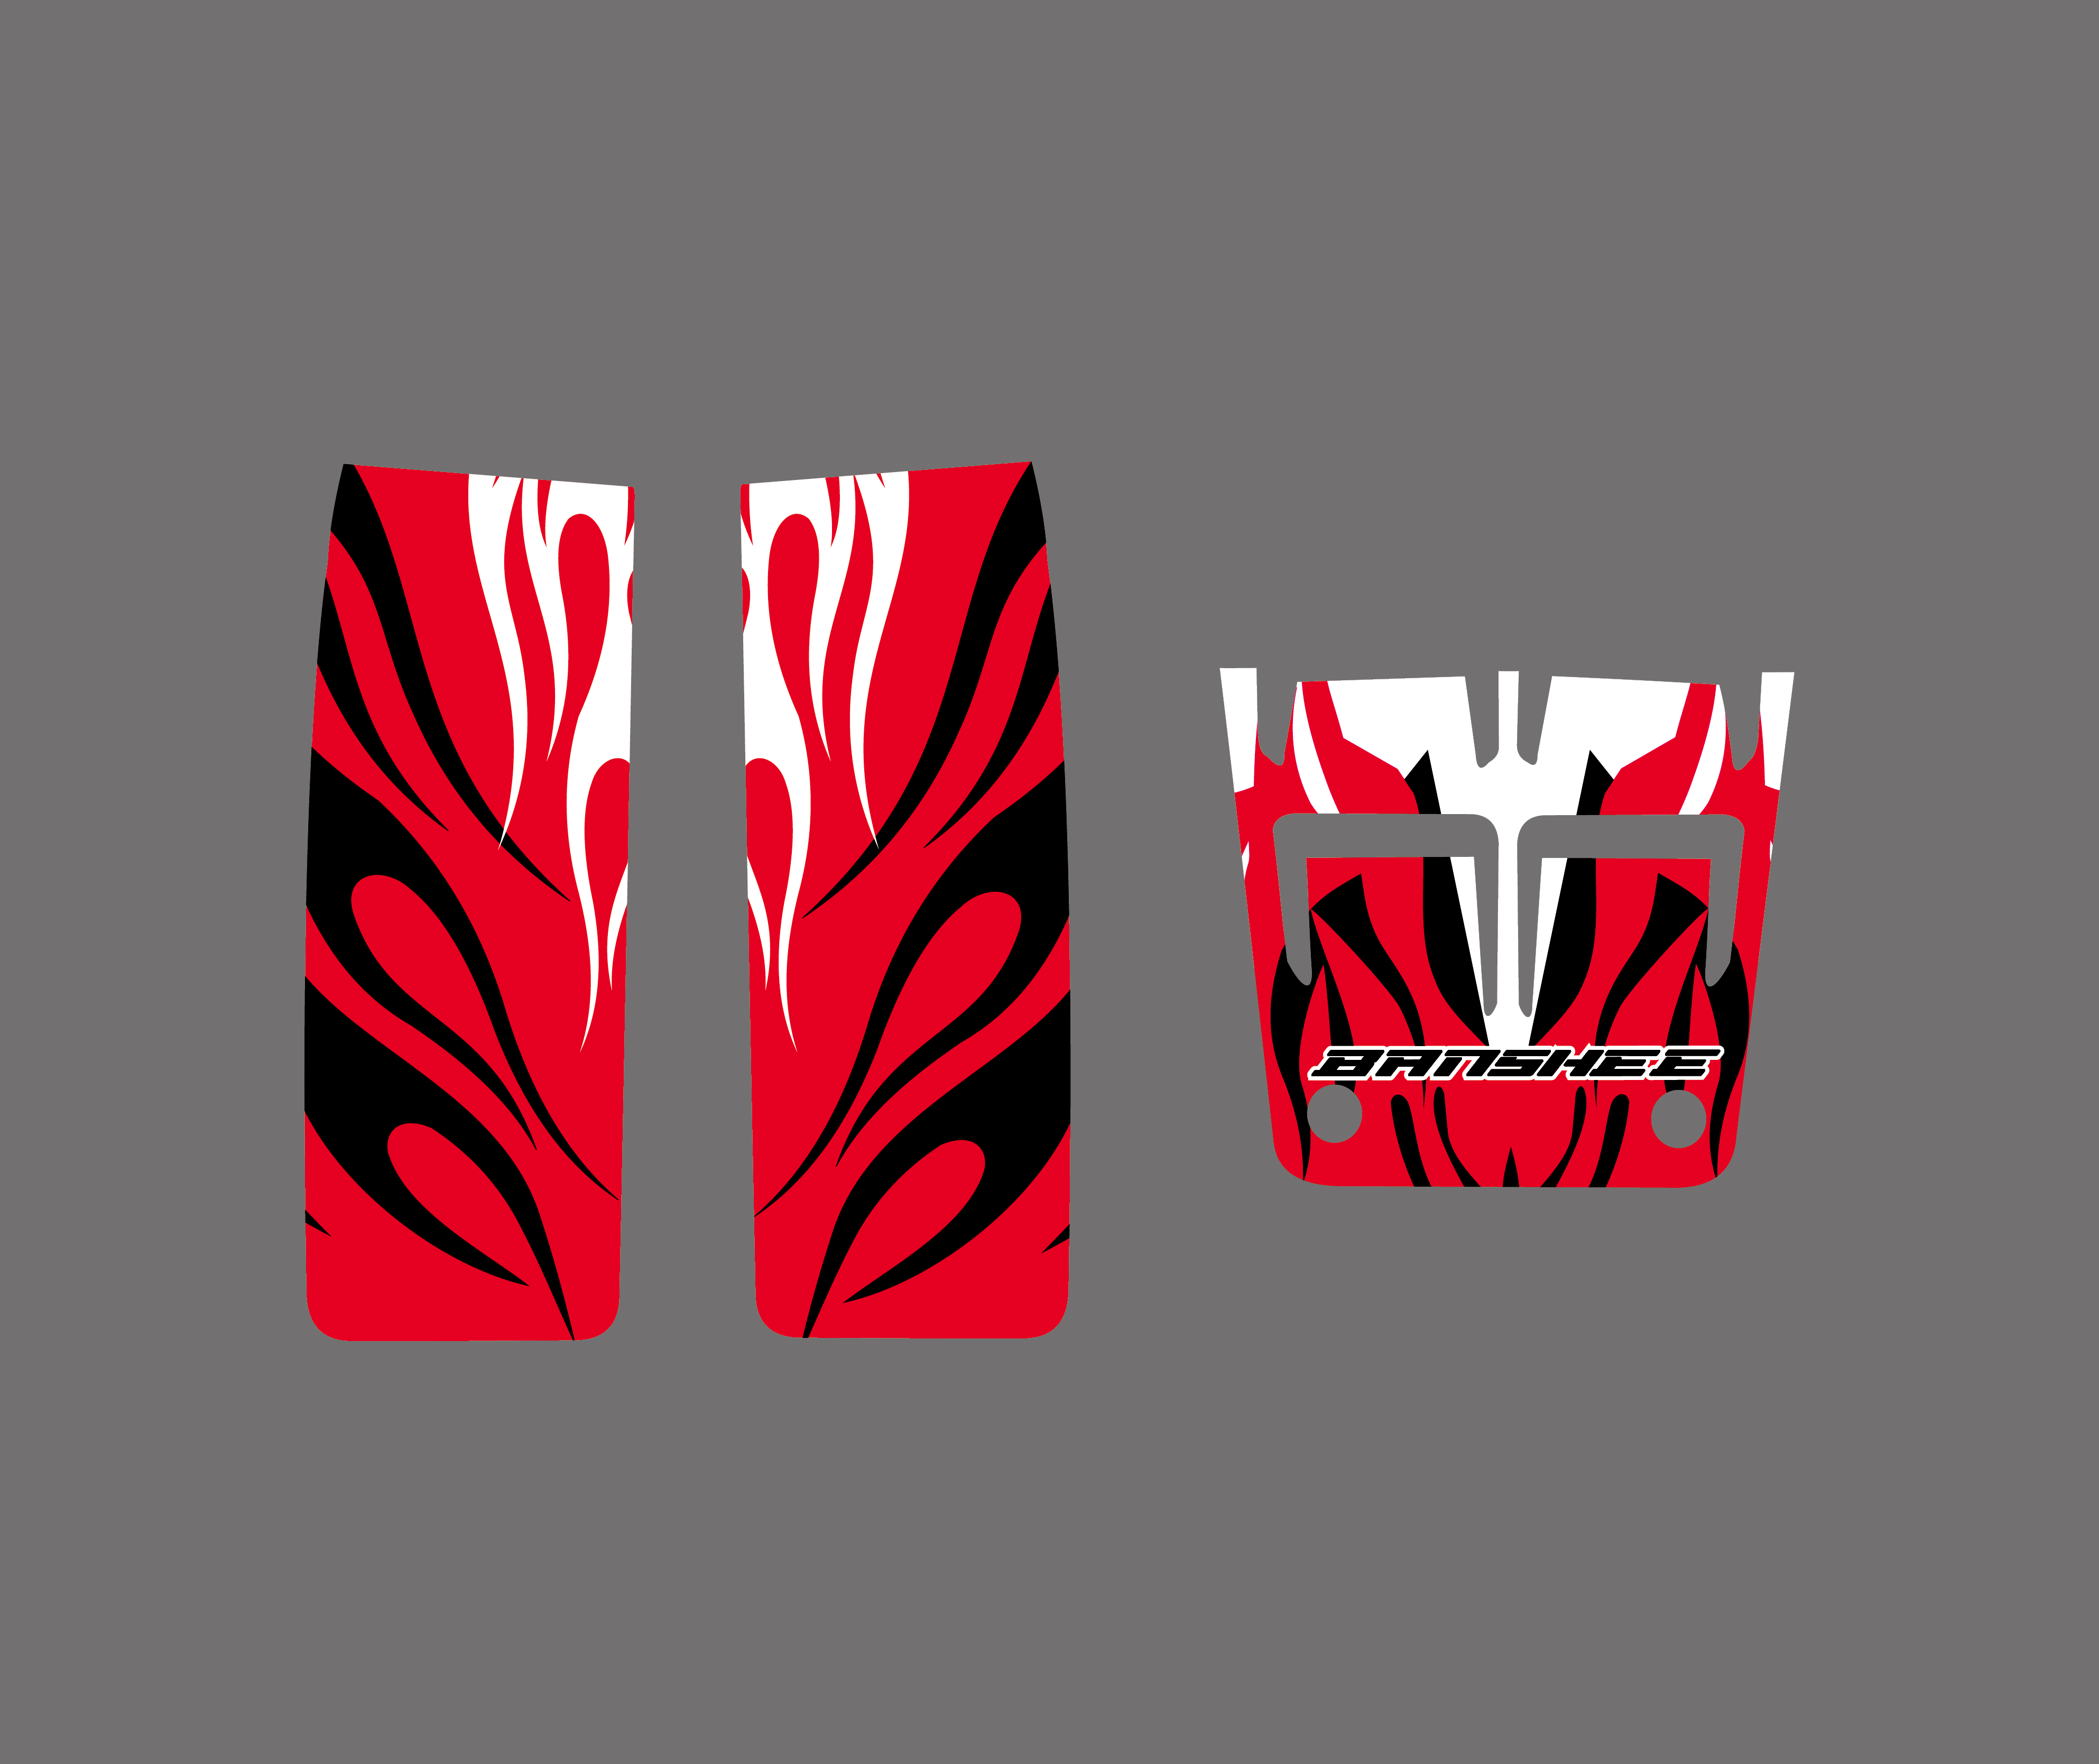 New BLACK RED DECALS STICKERS Graphics Kits For YAMAHA